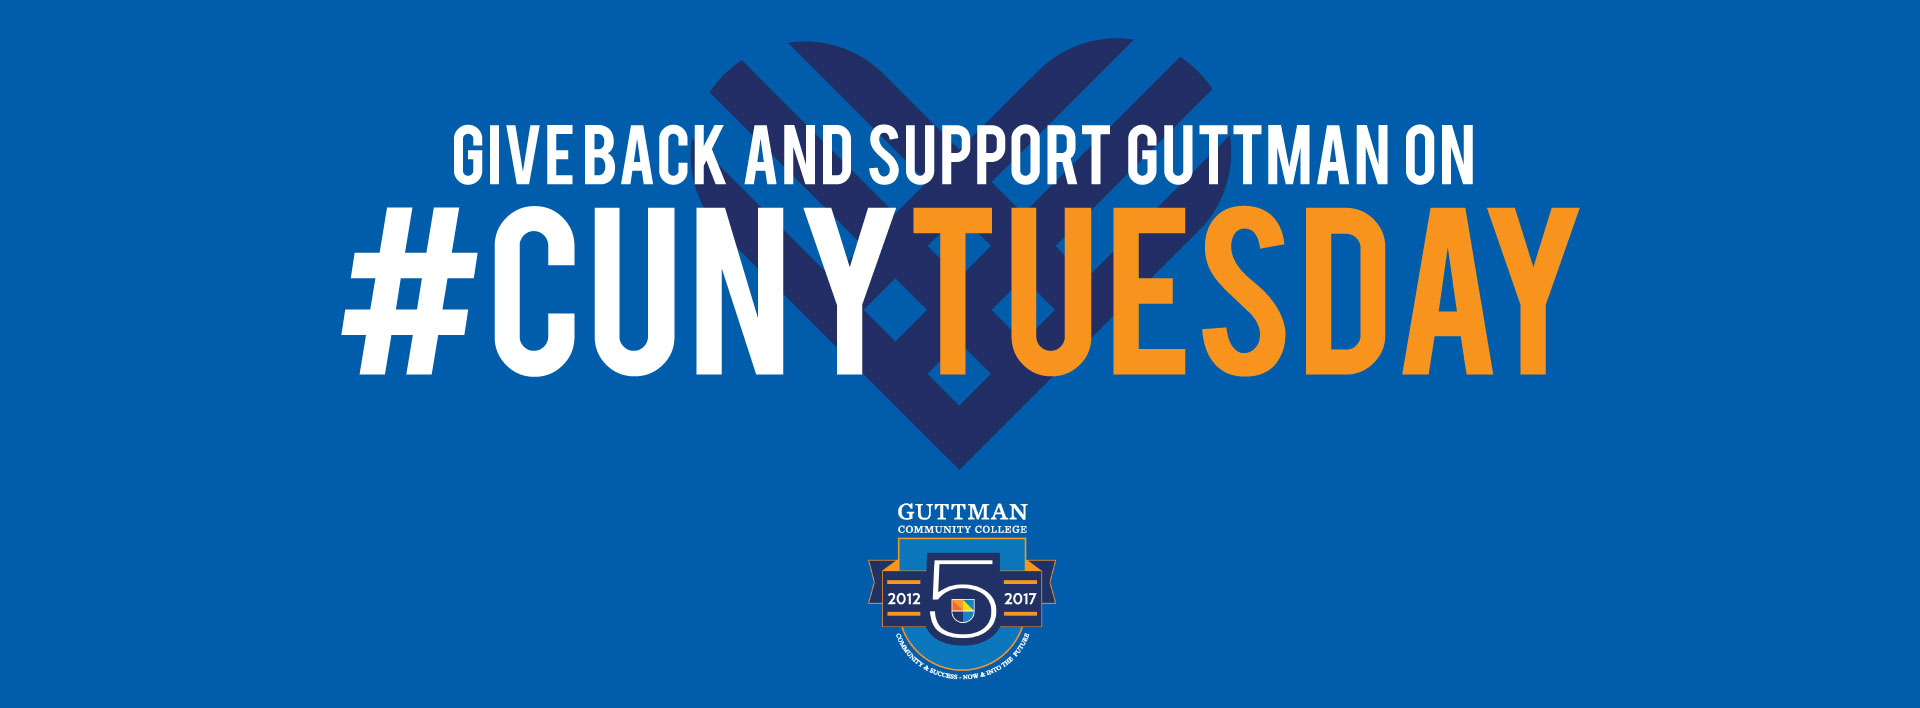 Give Back and Support Guttman on CUNY Tuesday